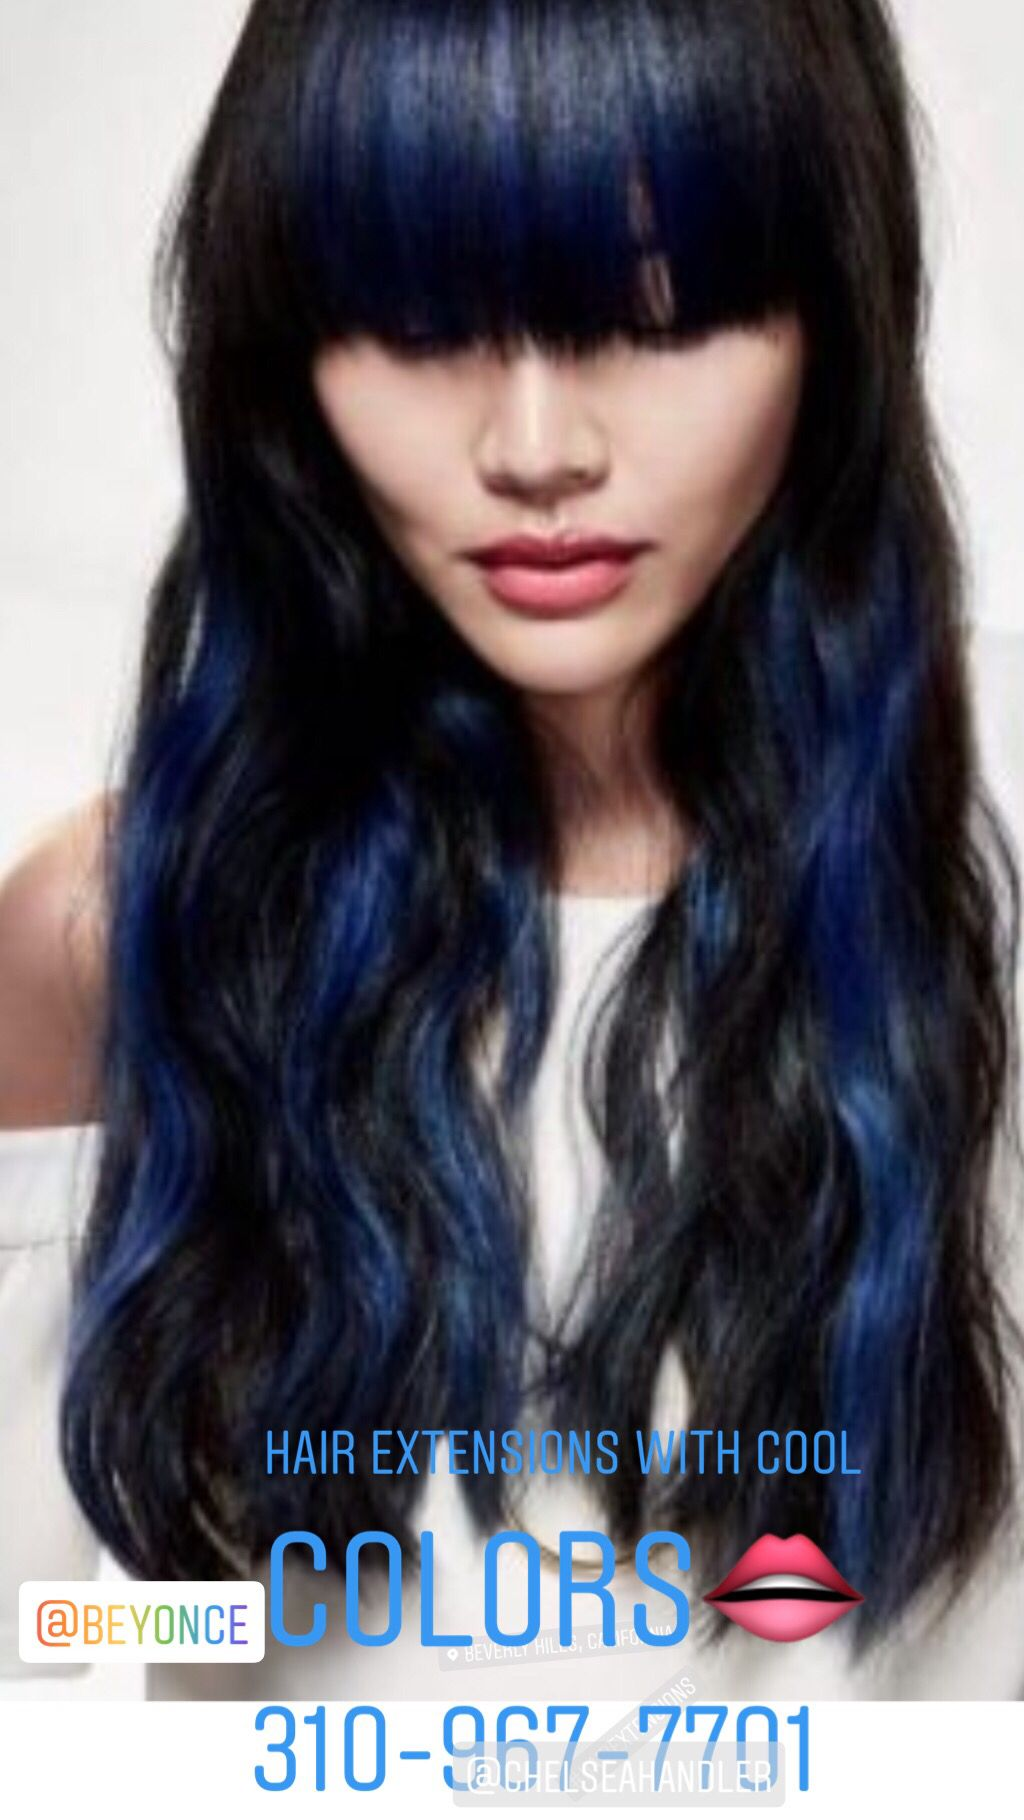 Hair Extensions with colors are so beautiful if you live